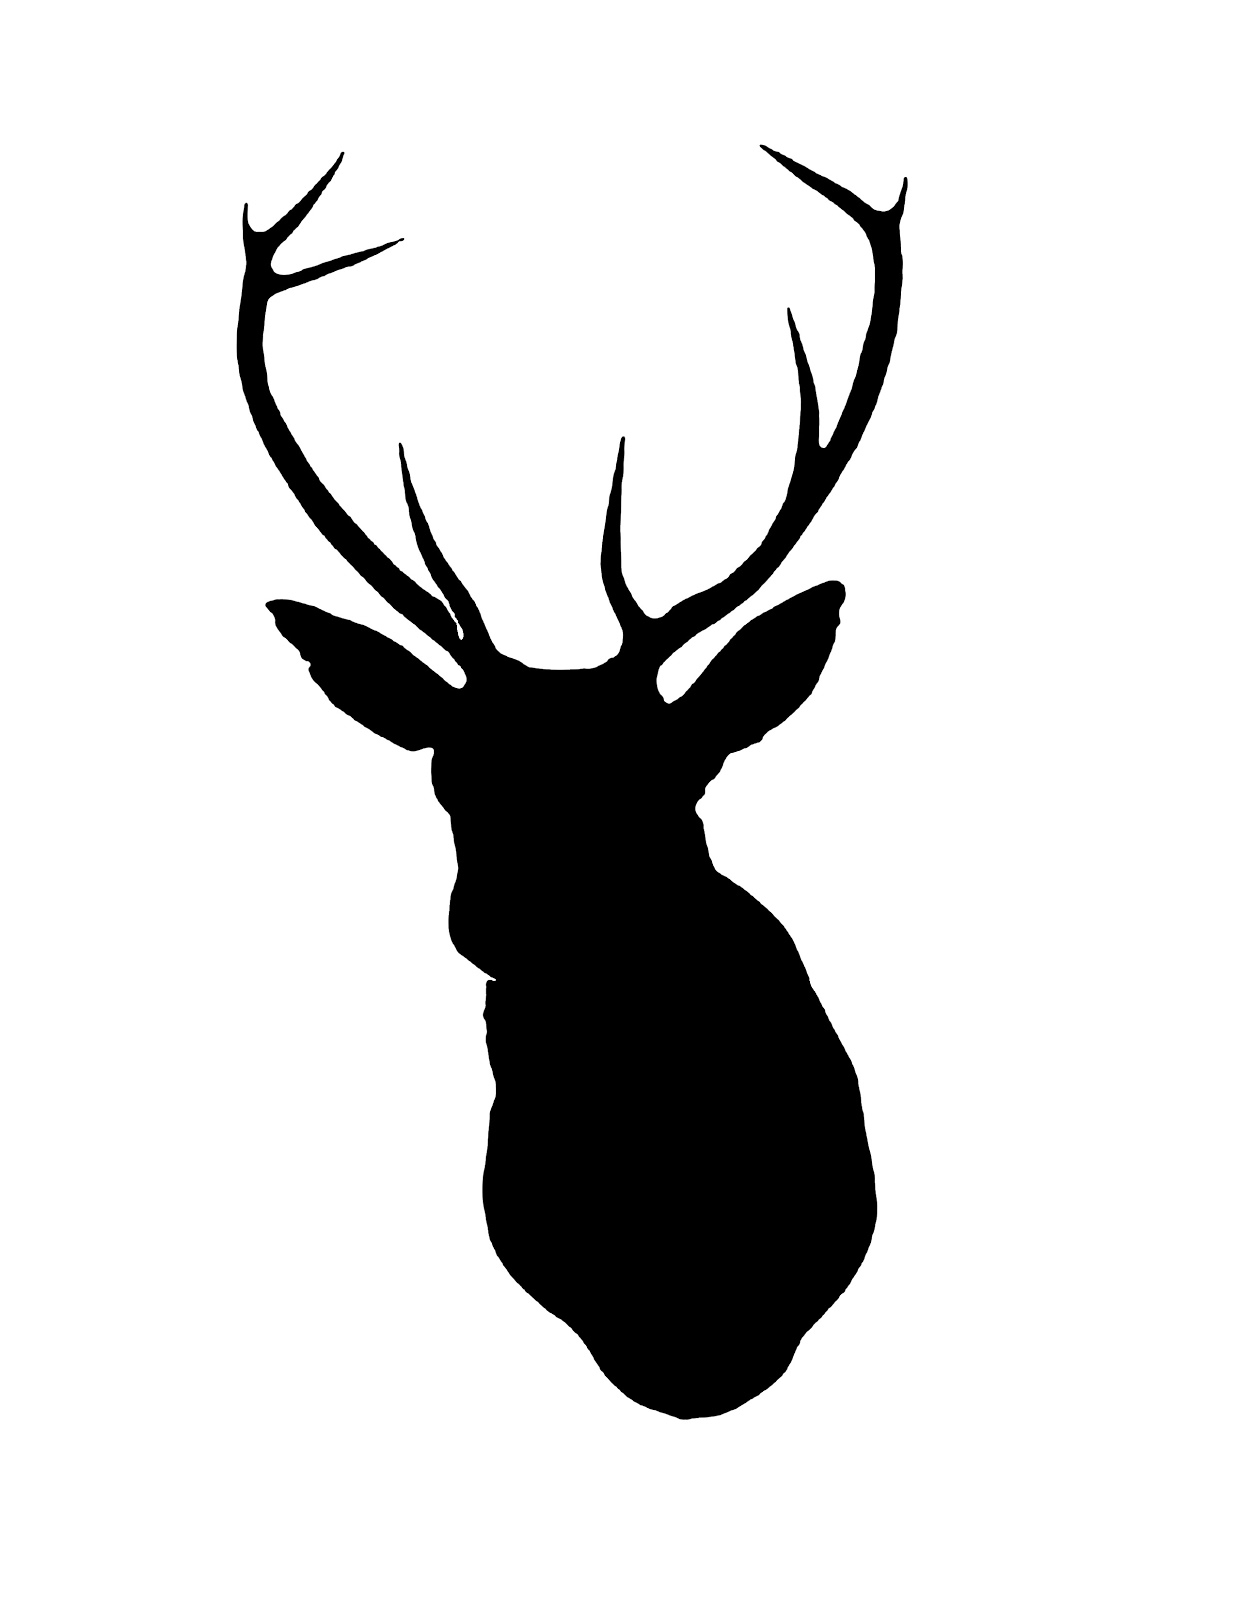 1236x1600 Free Deer Head Silhouette, Hanslodge Clip Art Collection